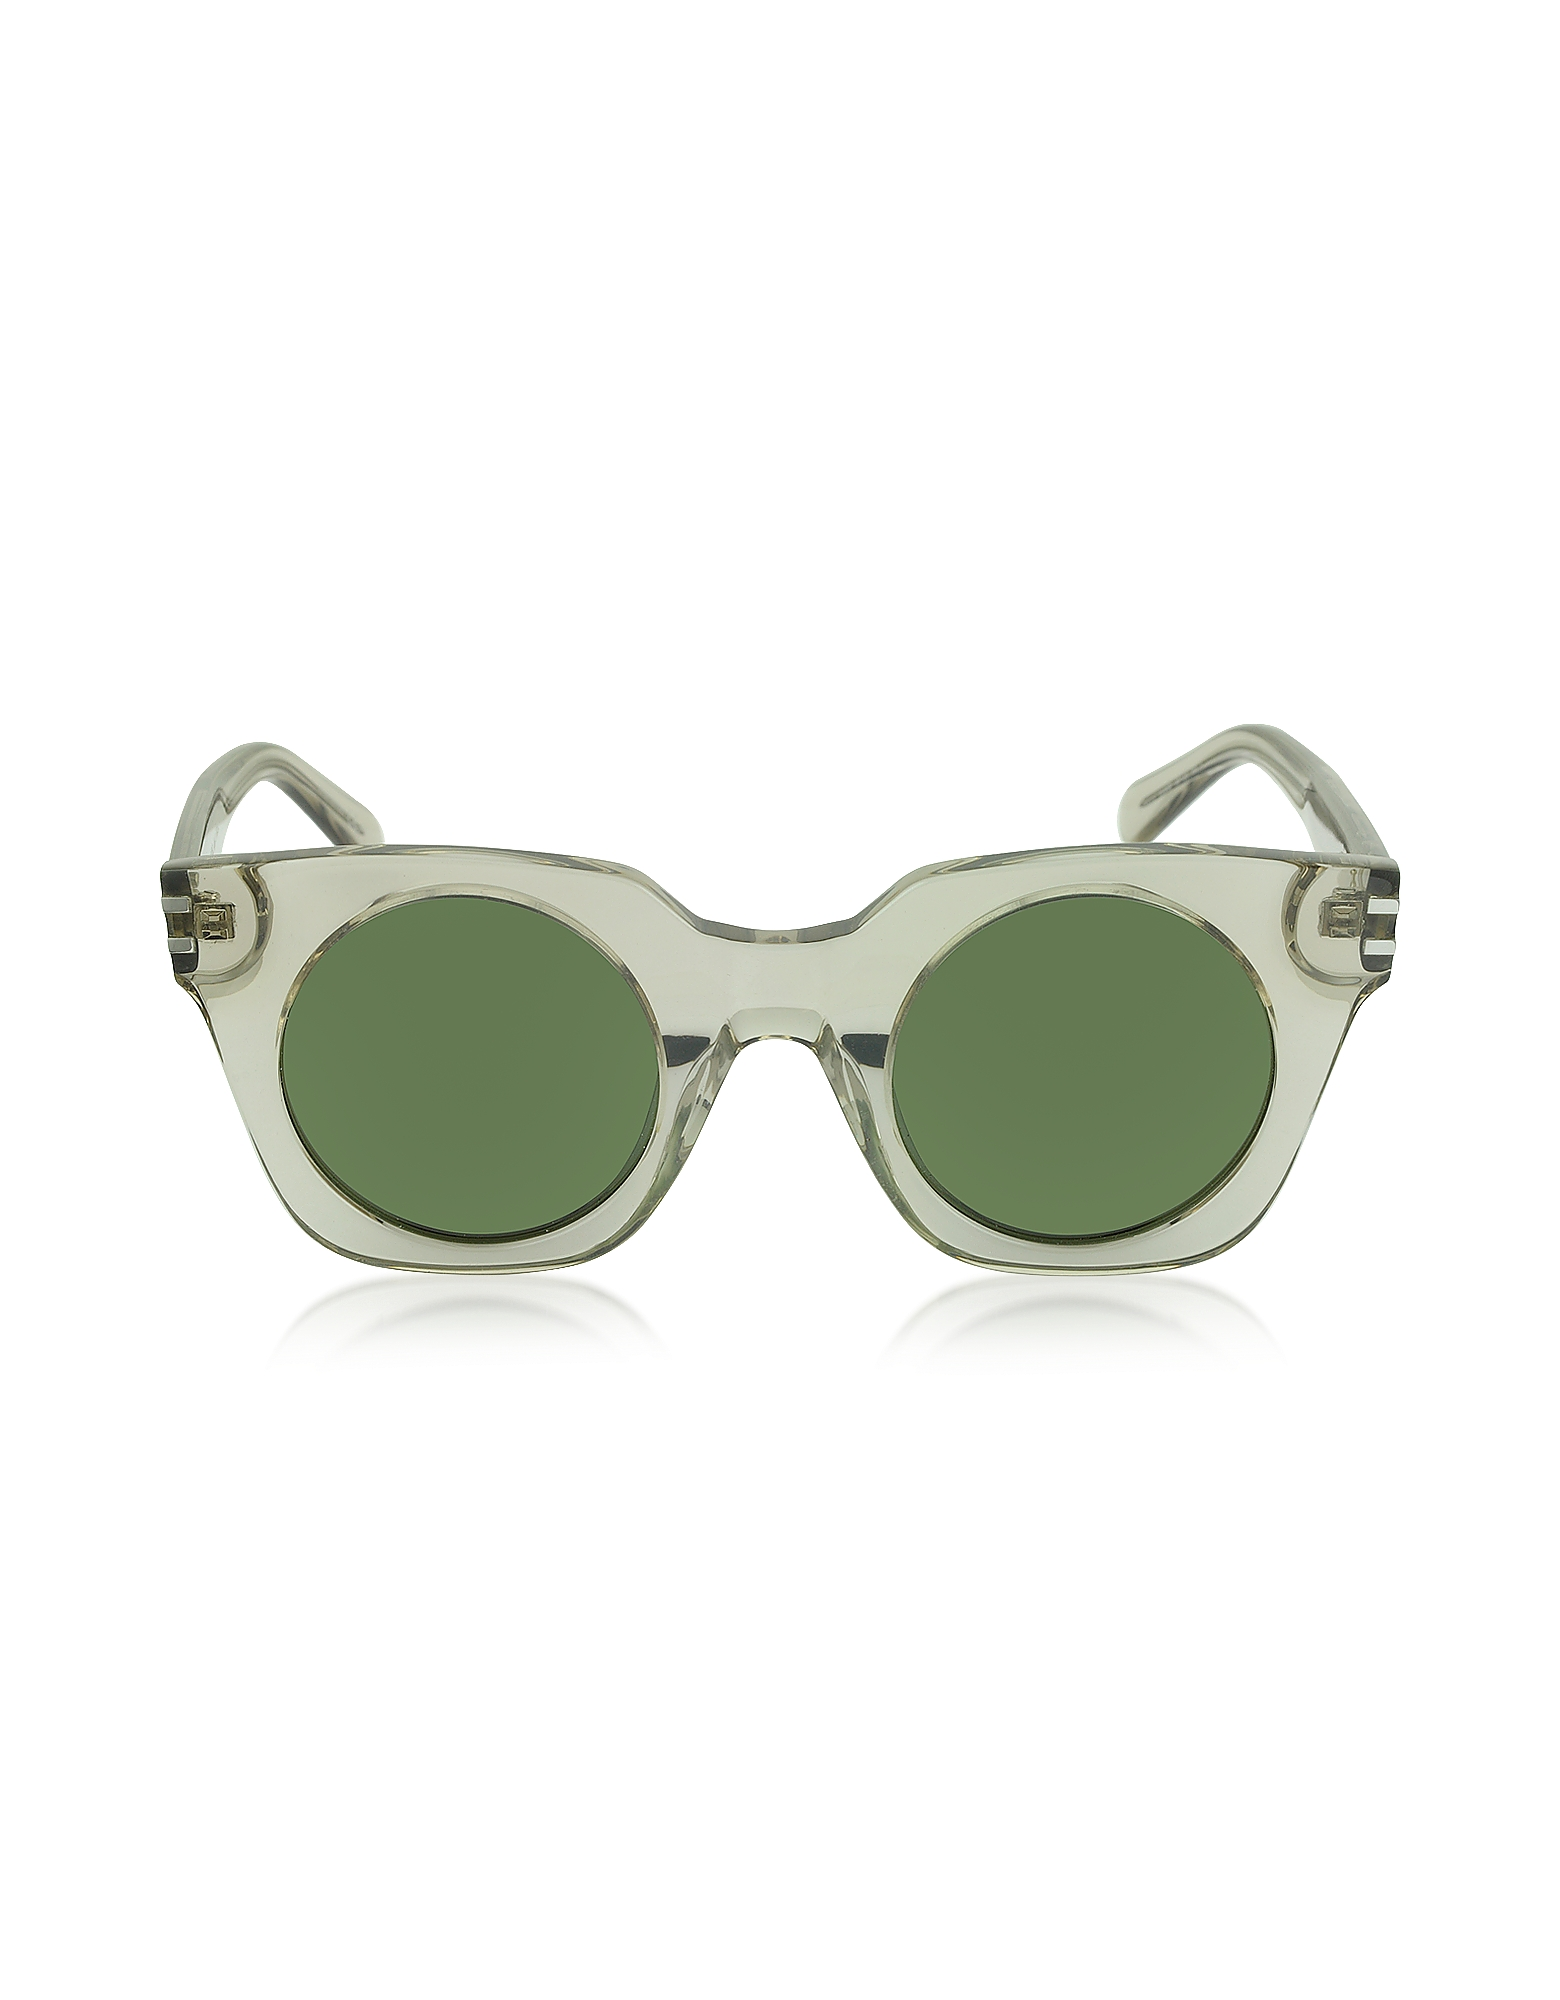 Marc Jacobs Designer Sunglasses, MJ 532/S Circle in a Square Acetate Sunglasses